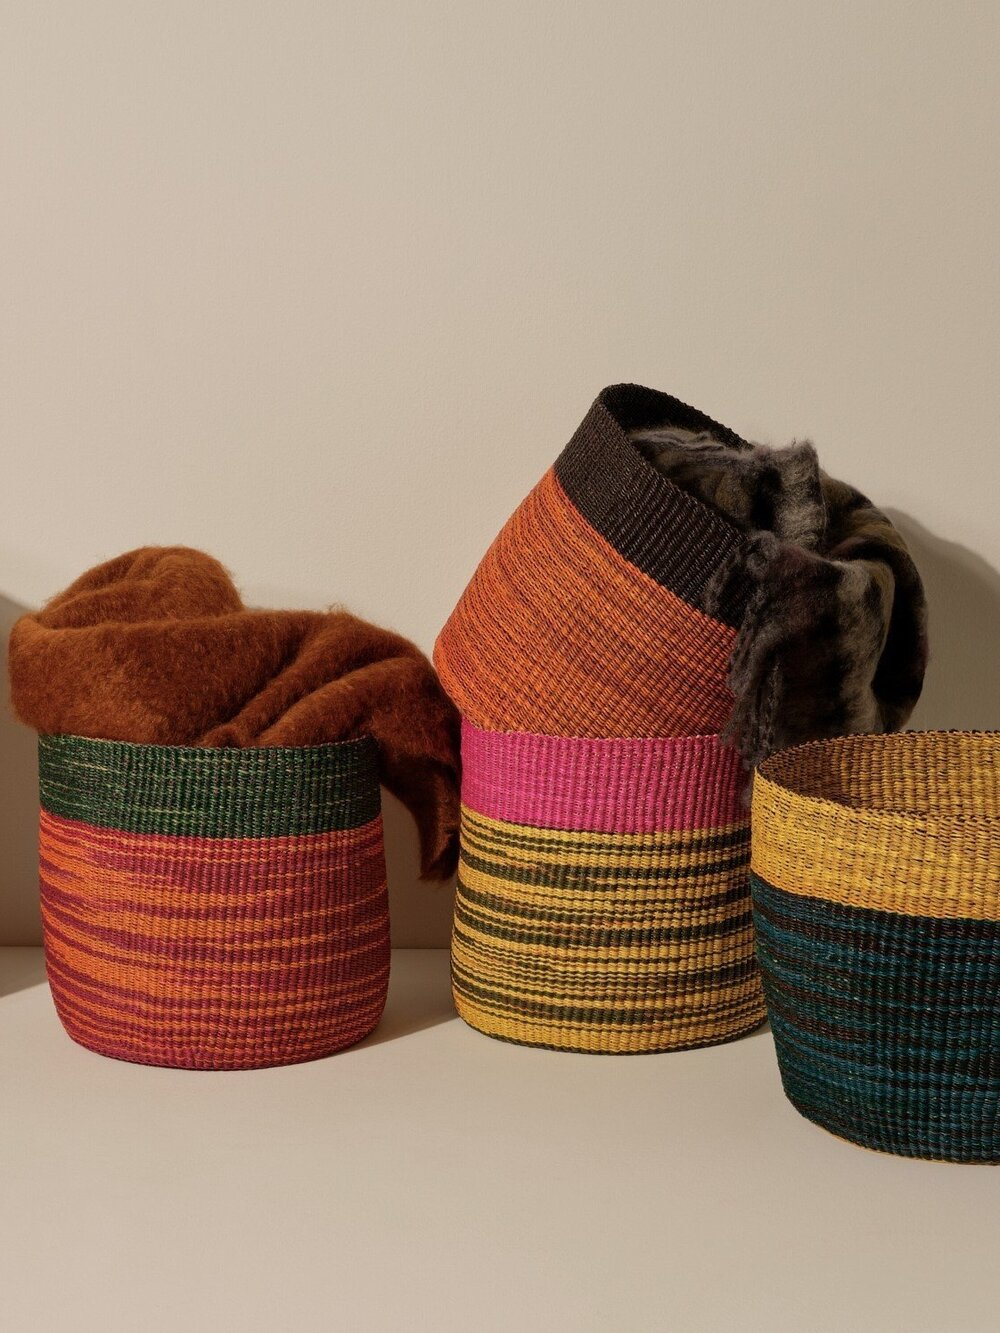 Sustainably Chic | Sustainable Fashion & Lifestyle Blog | The Best Sustainable Baskets for Eco-Friendly Storage | Goodee.jpg